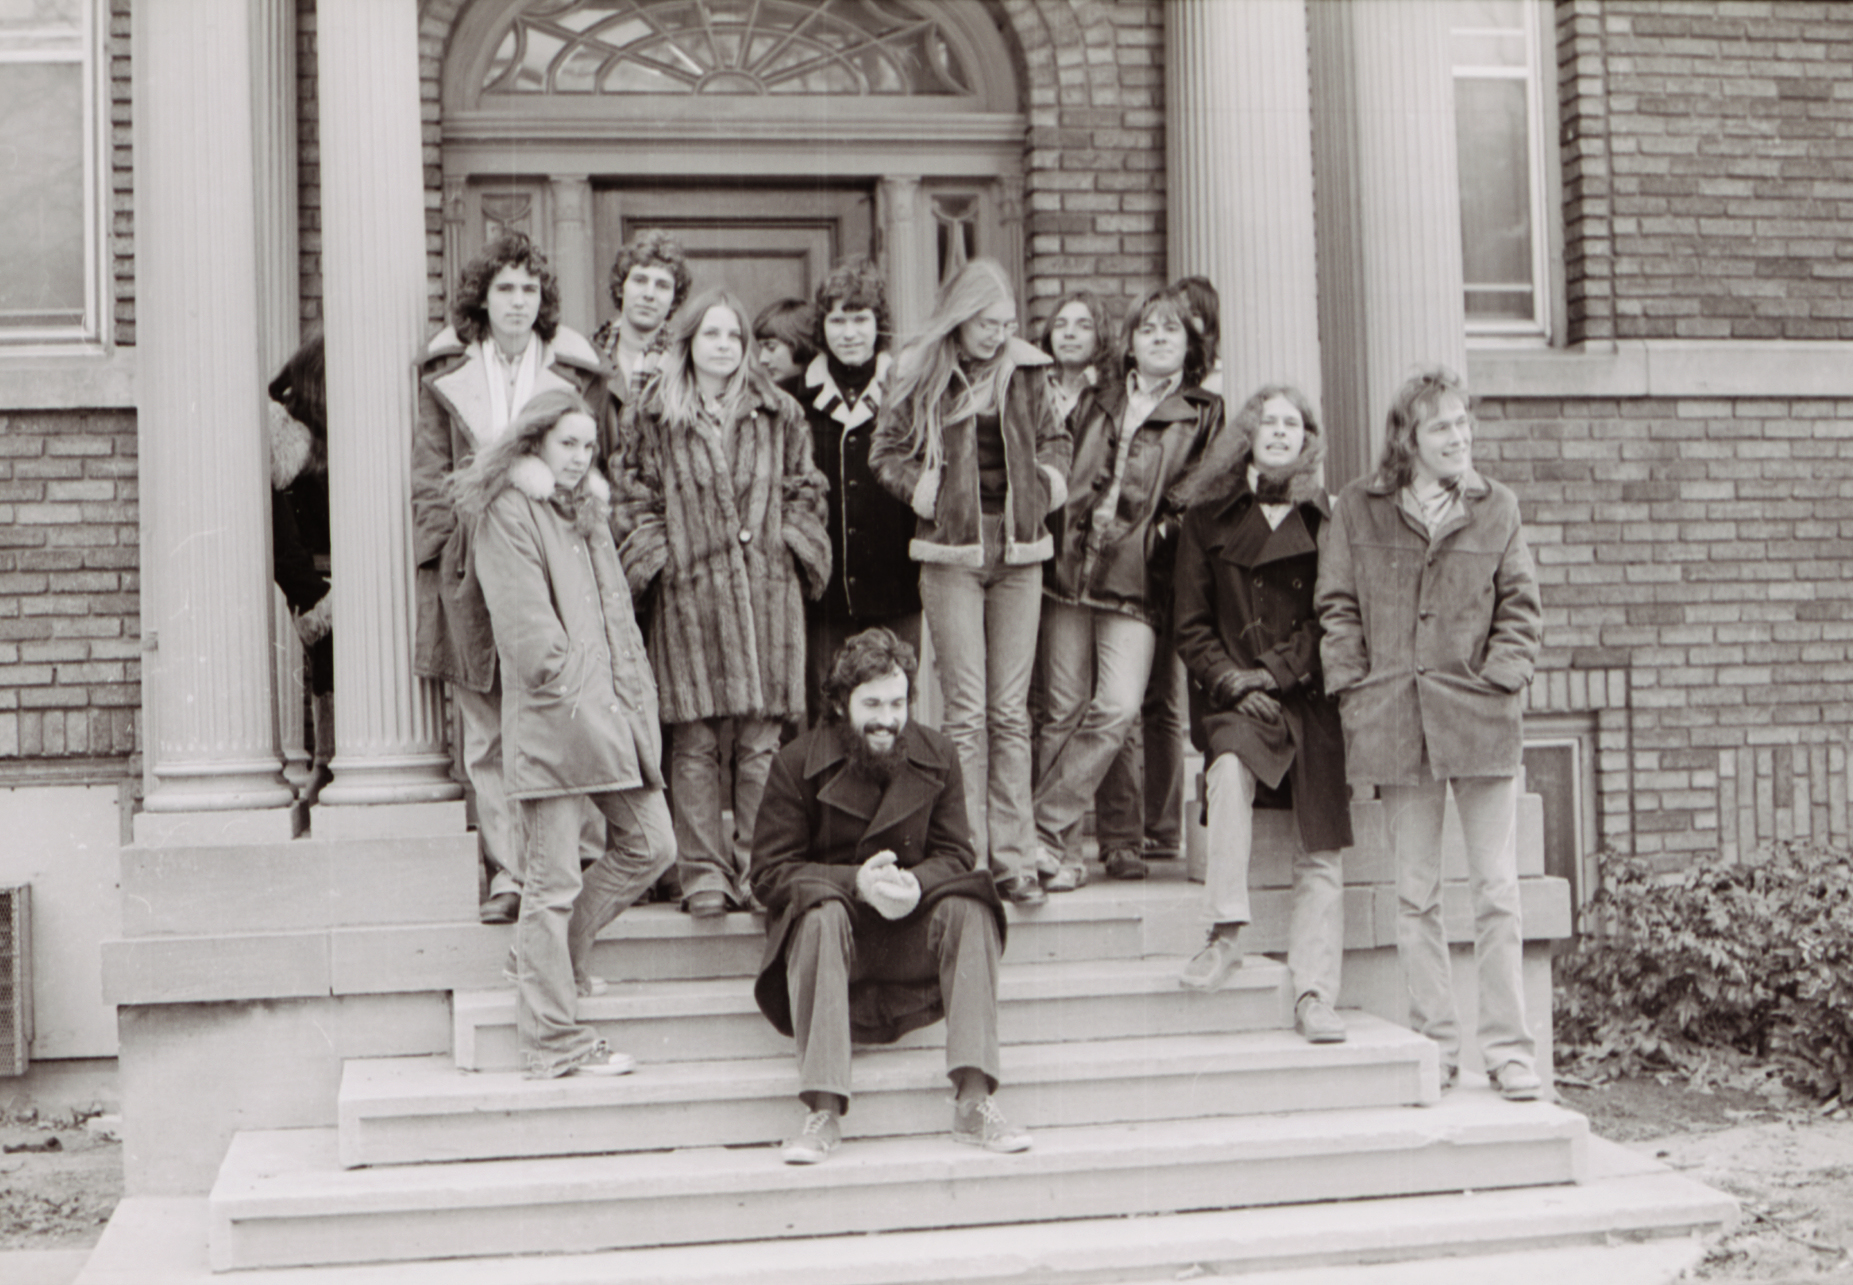 A 1970s era photograph of students standing out front of The Cool School